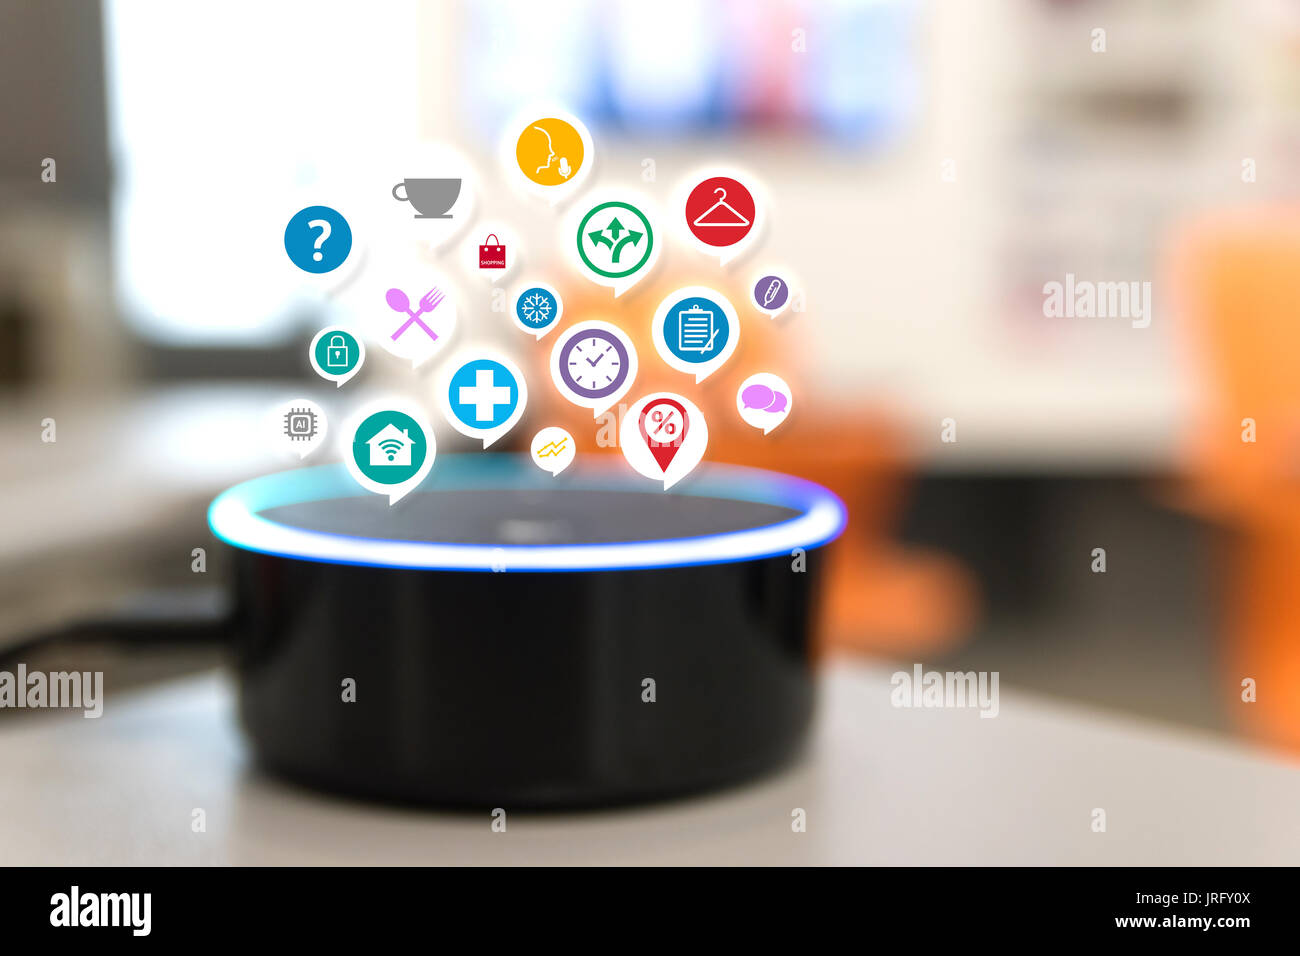 Home advisor , voice recognition , artificial intelligence device and internet of things concept. Stock Photo